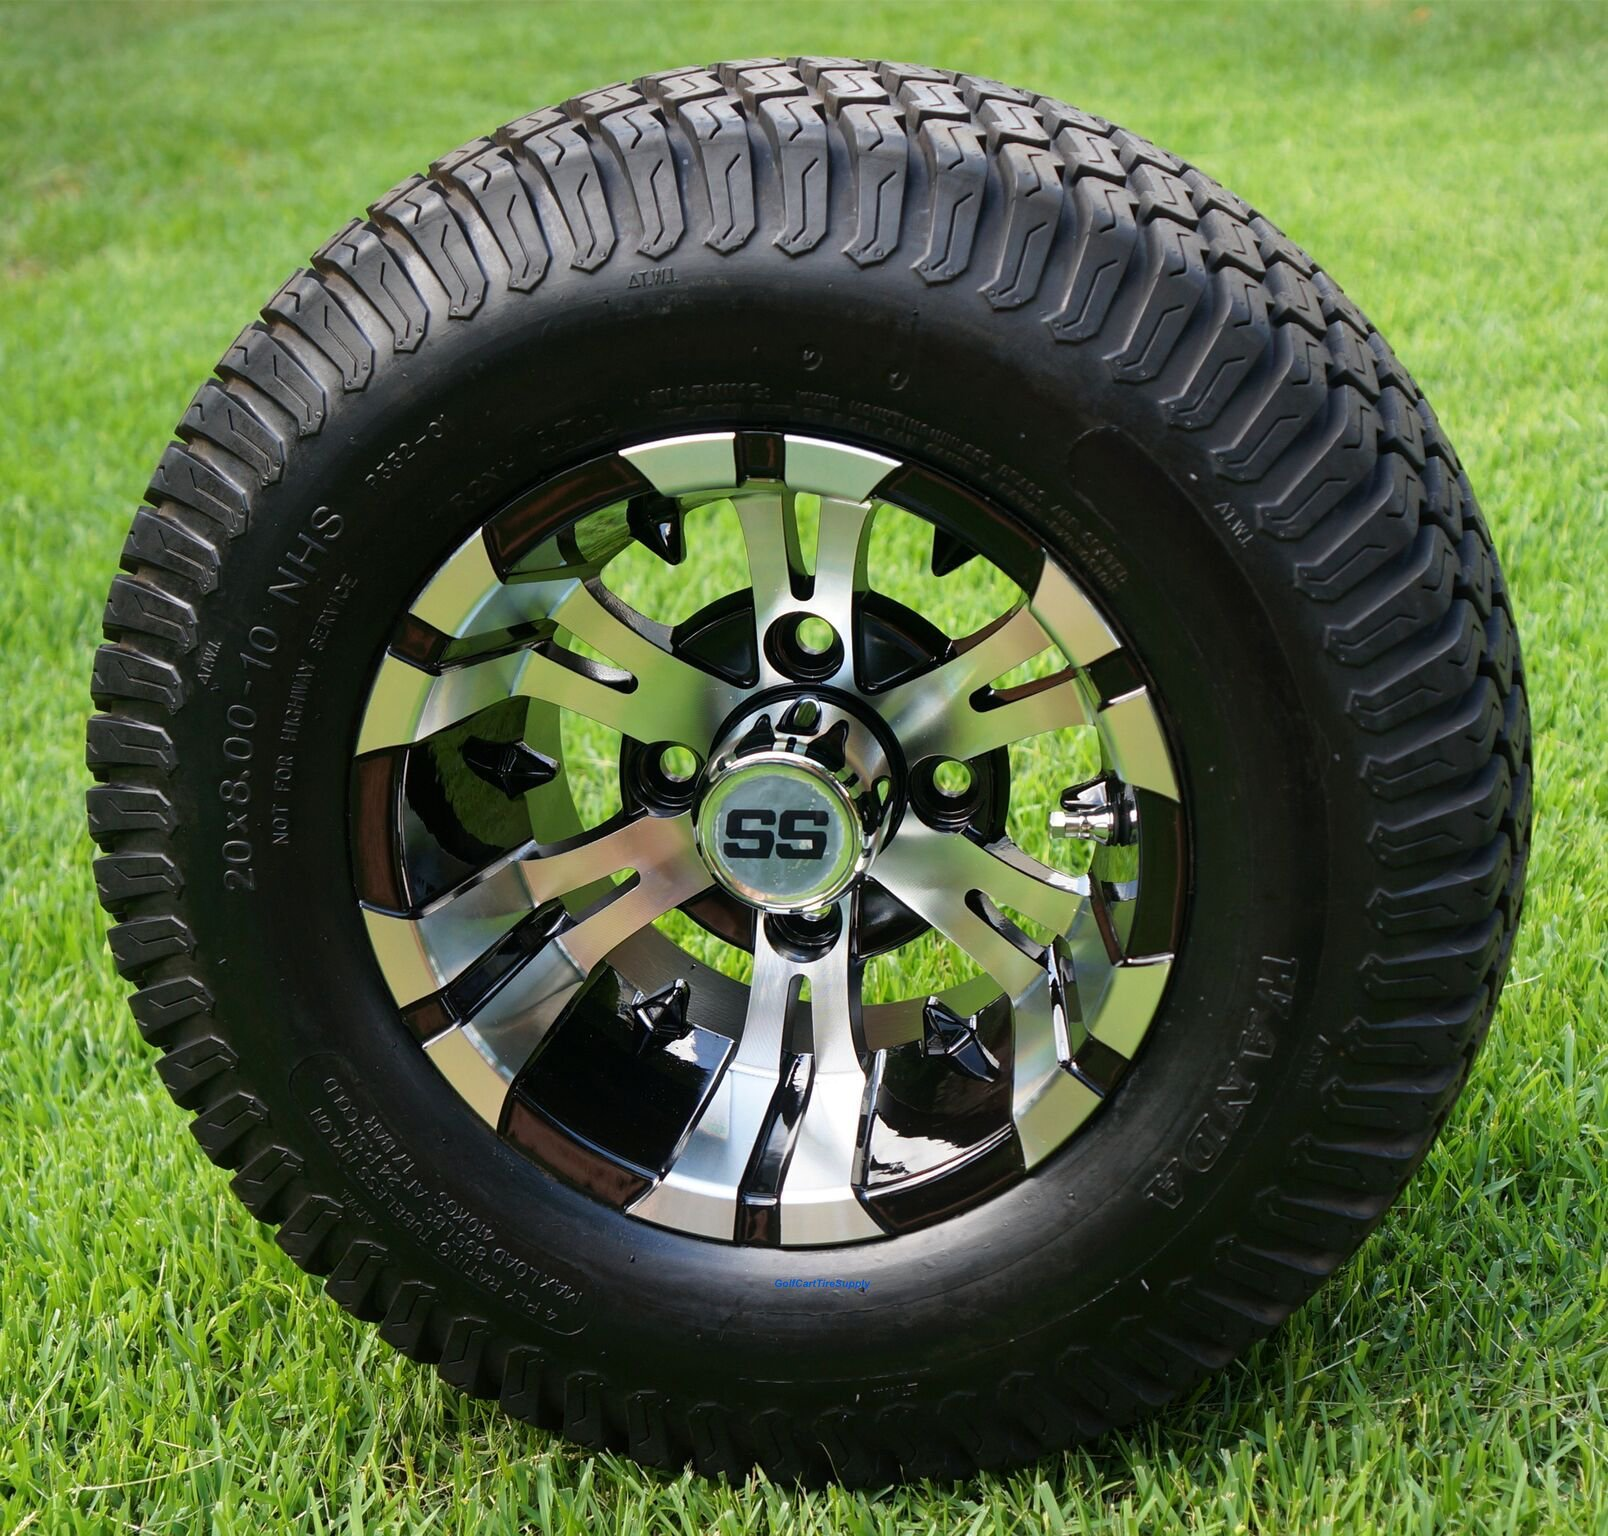 10'' VAMPIRE Machined/Black Golf Cart Wheels and 20x8-10 TURF Golf Cart Tires - Set of 4